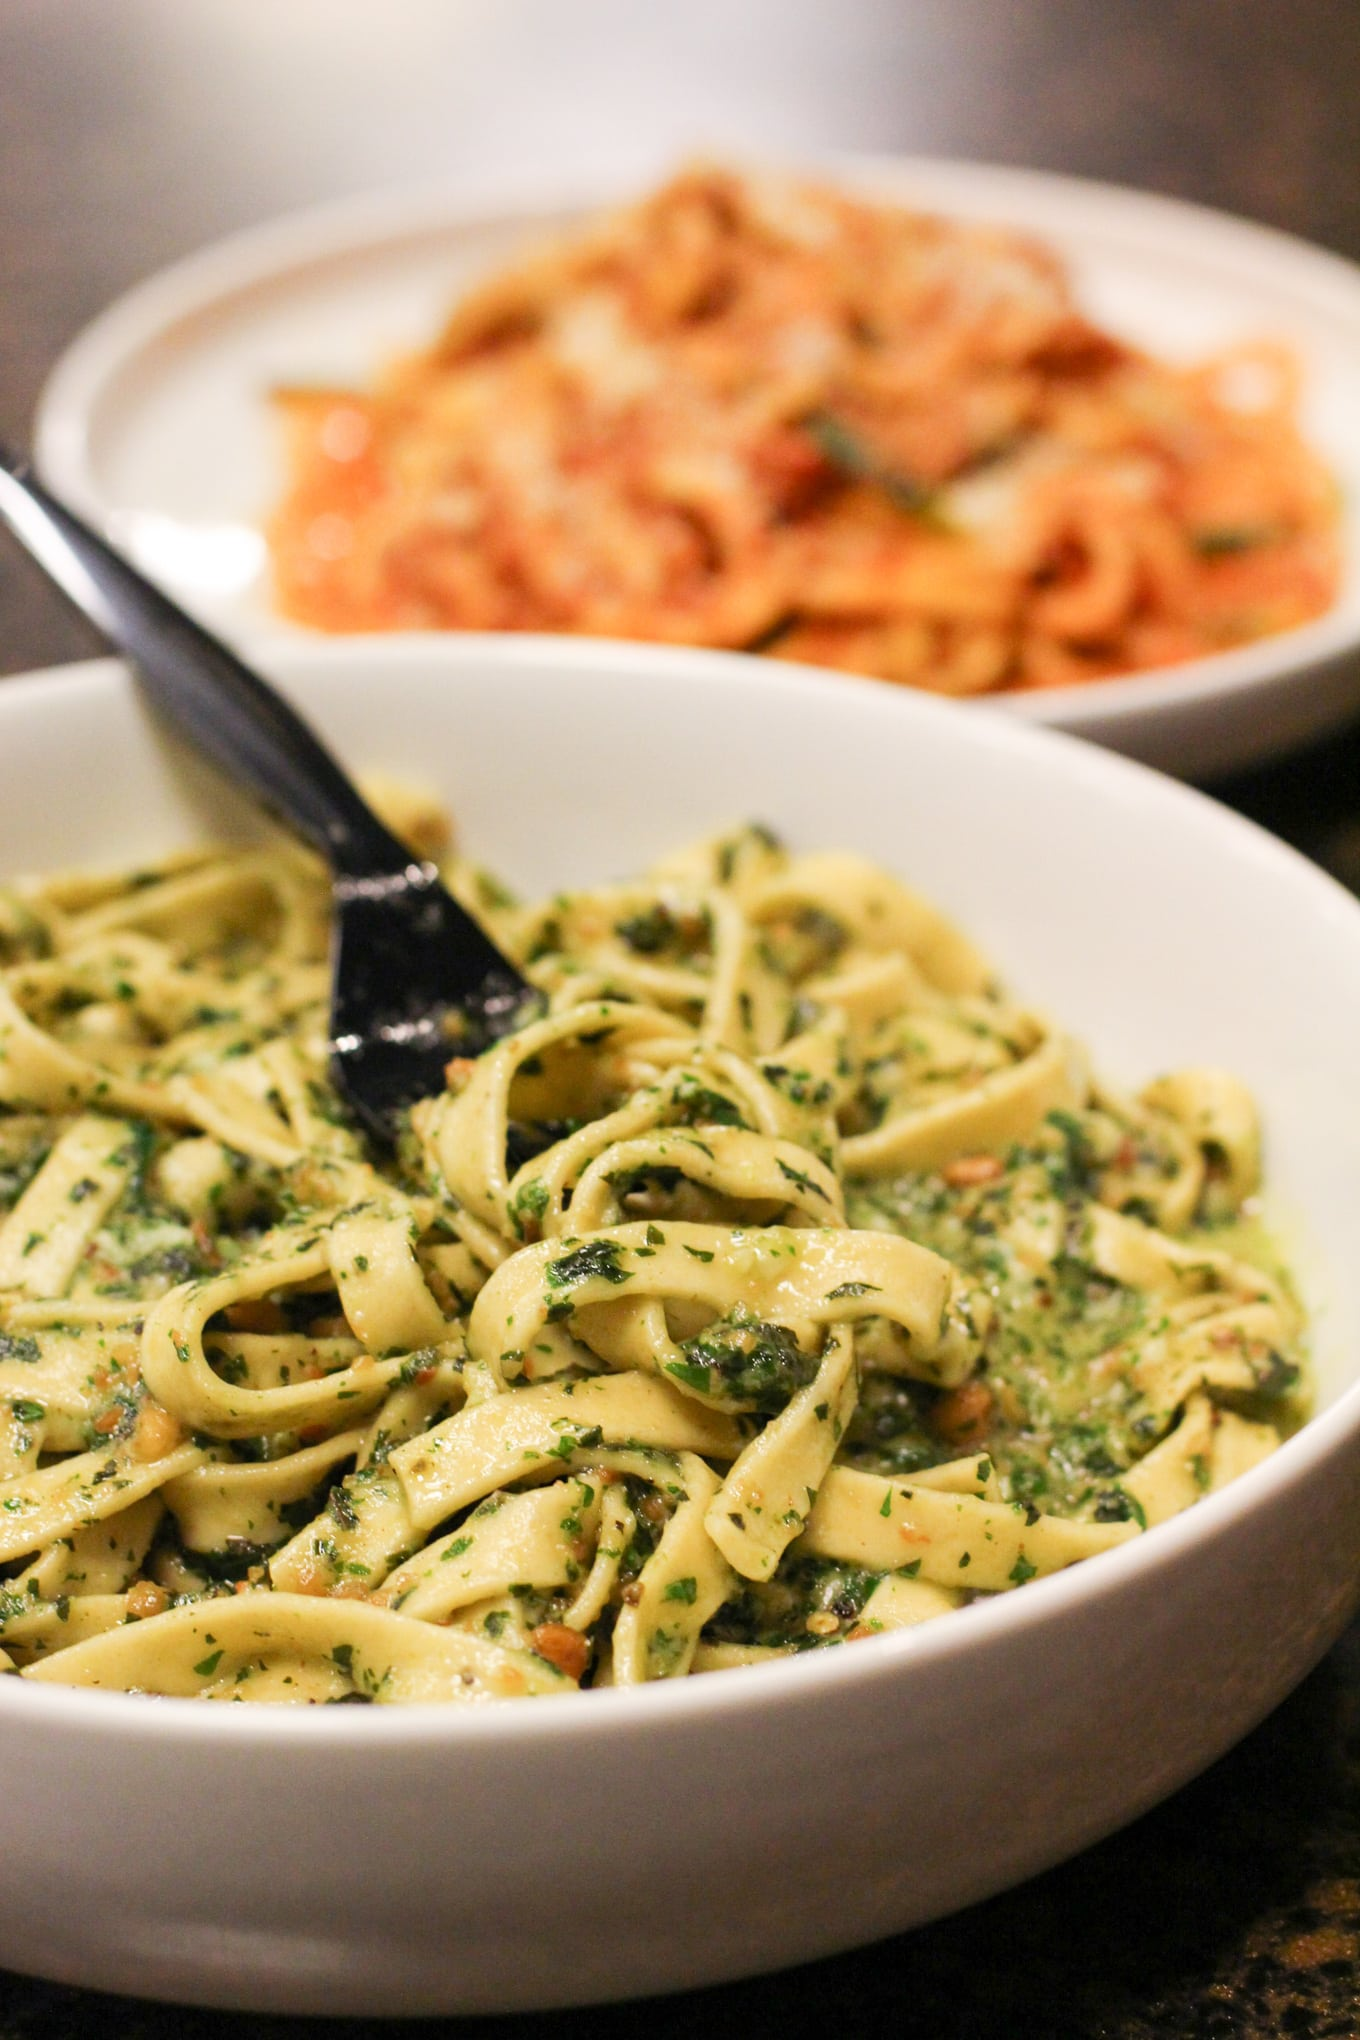 Fabio Viviani's Homemade Fettuccine with Pesto - Lake Shore Lady